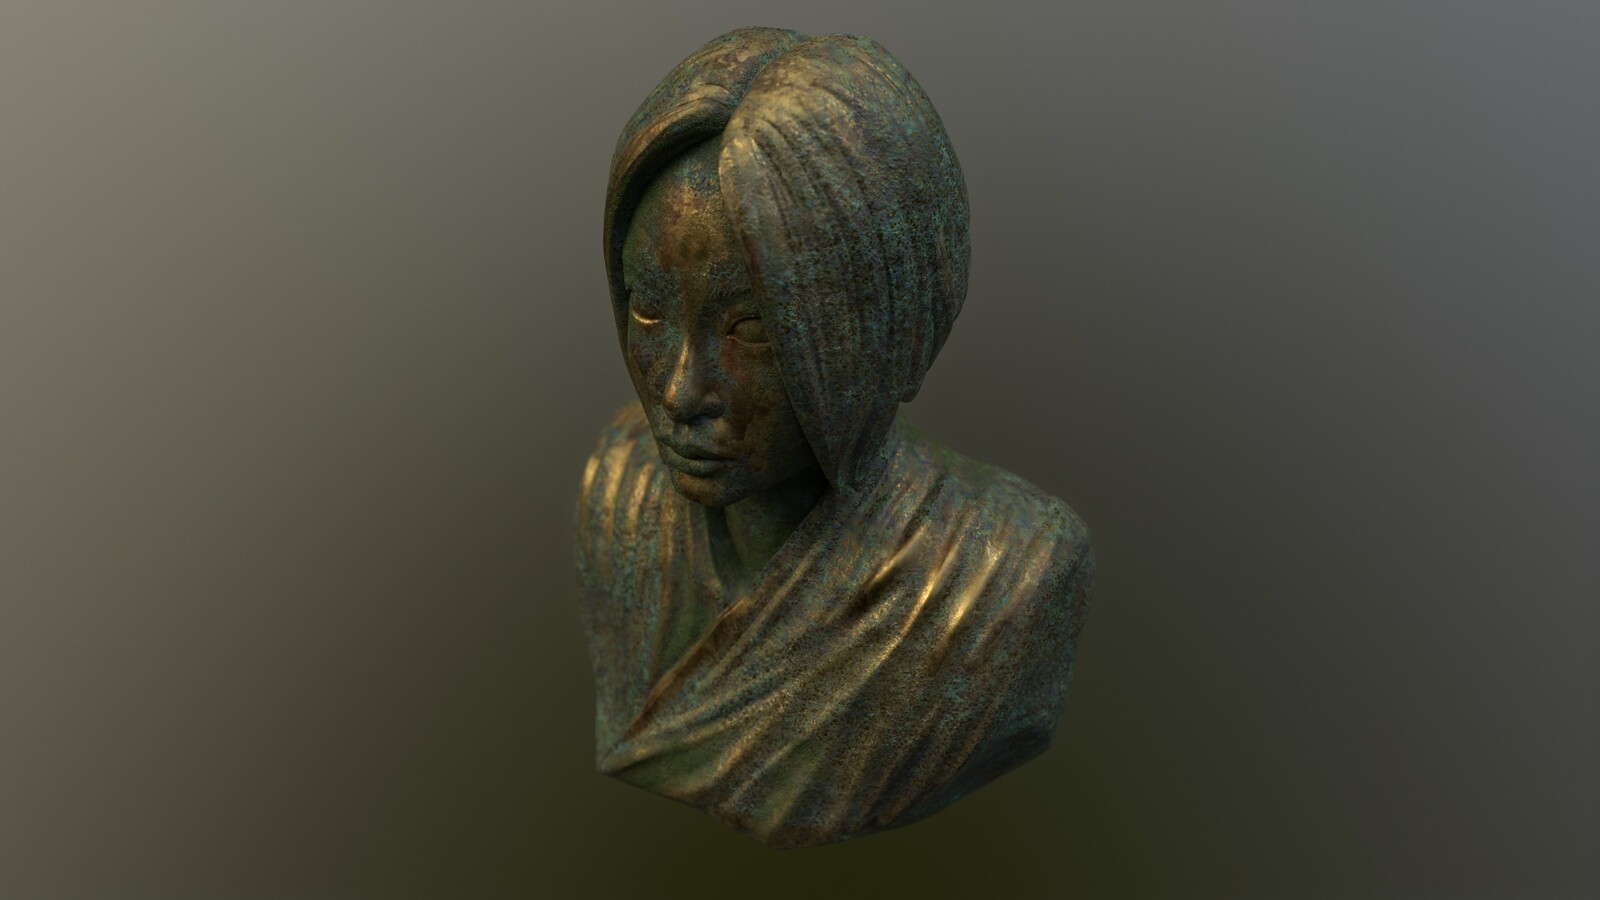 Aya Ueto bust. First experiment with texturing in Marmoset.